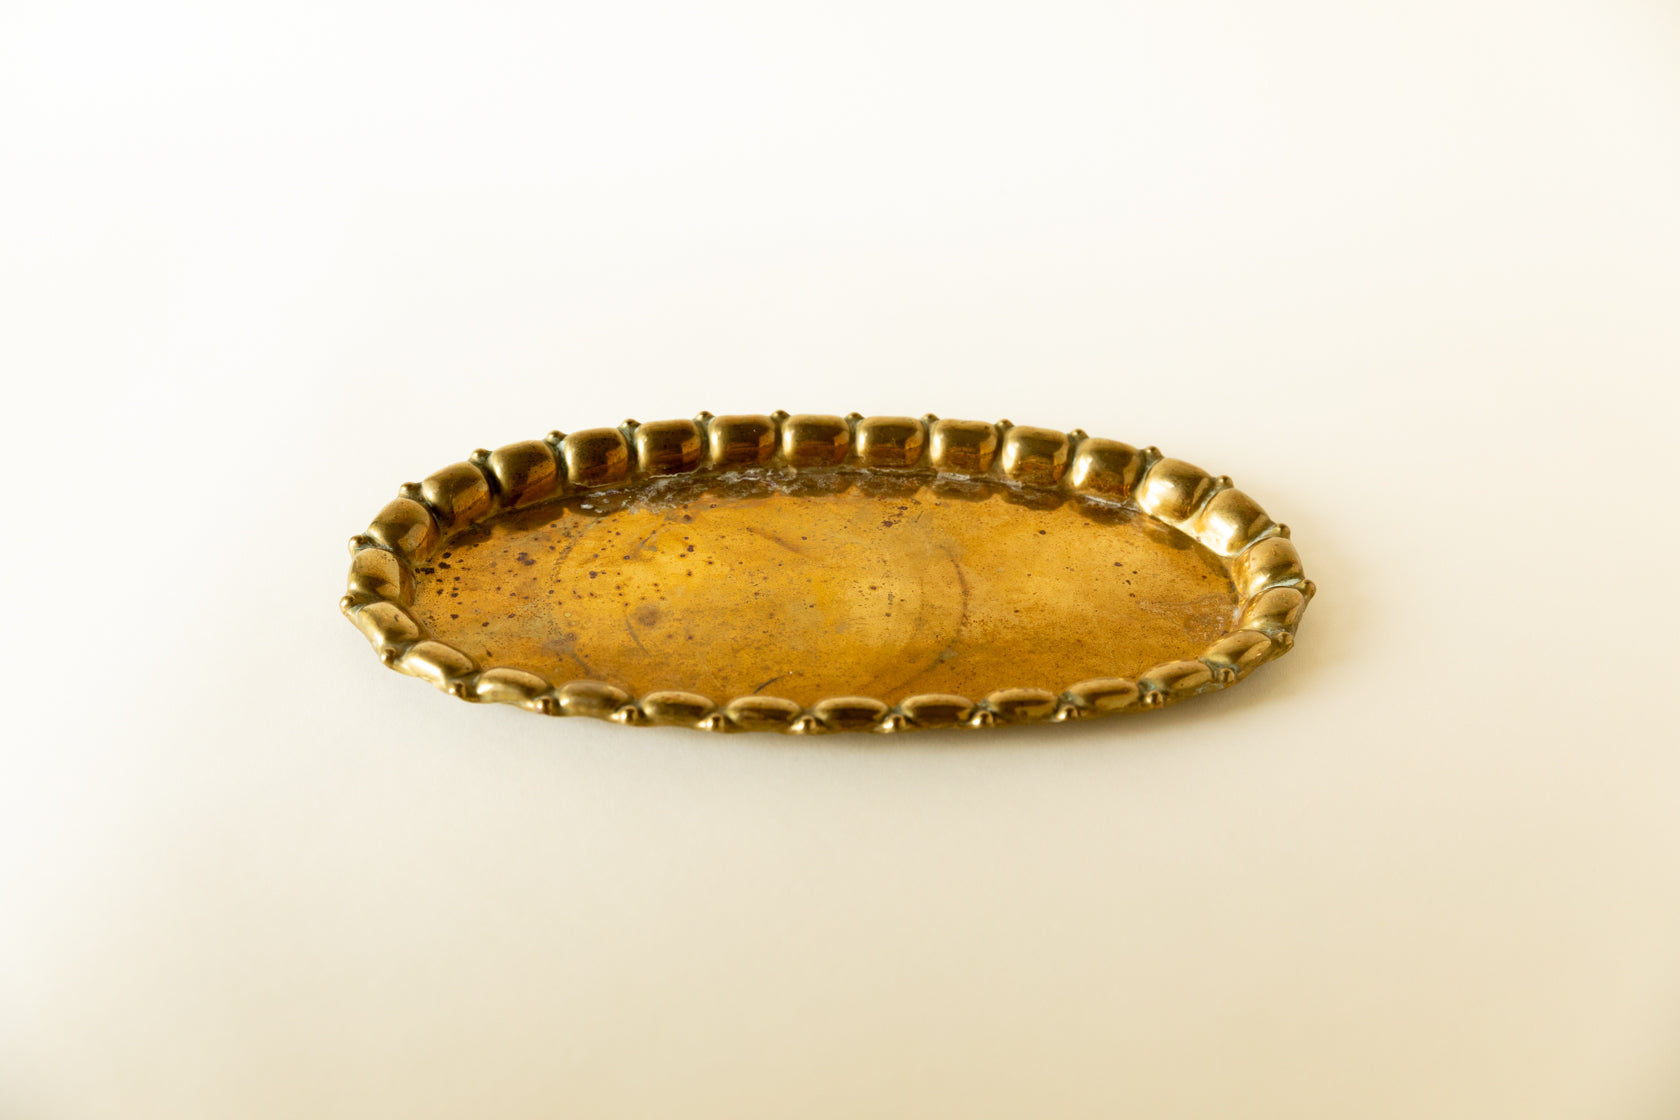 Oval Ornate Scalloped Brass Tray